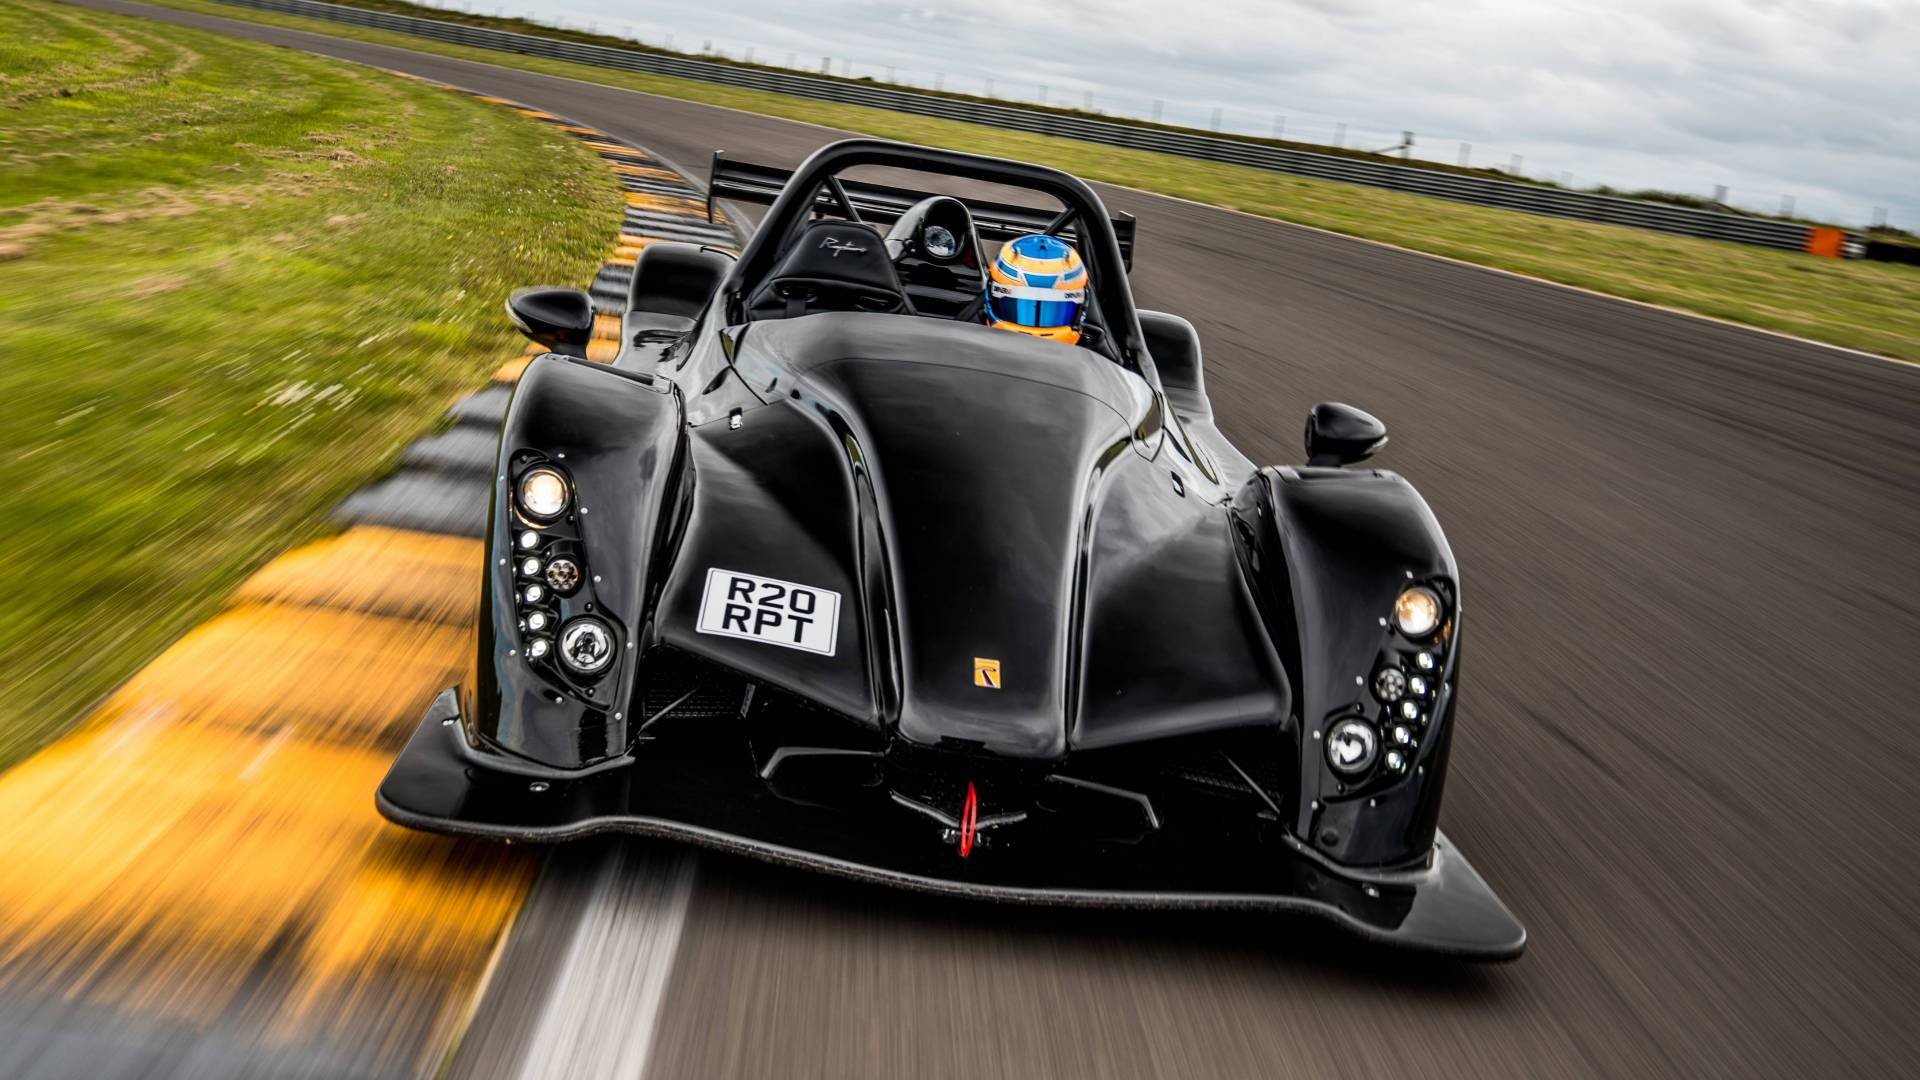 Radical Sportscars Reveals a 350 Horsepower Street Legal